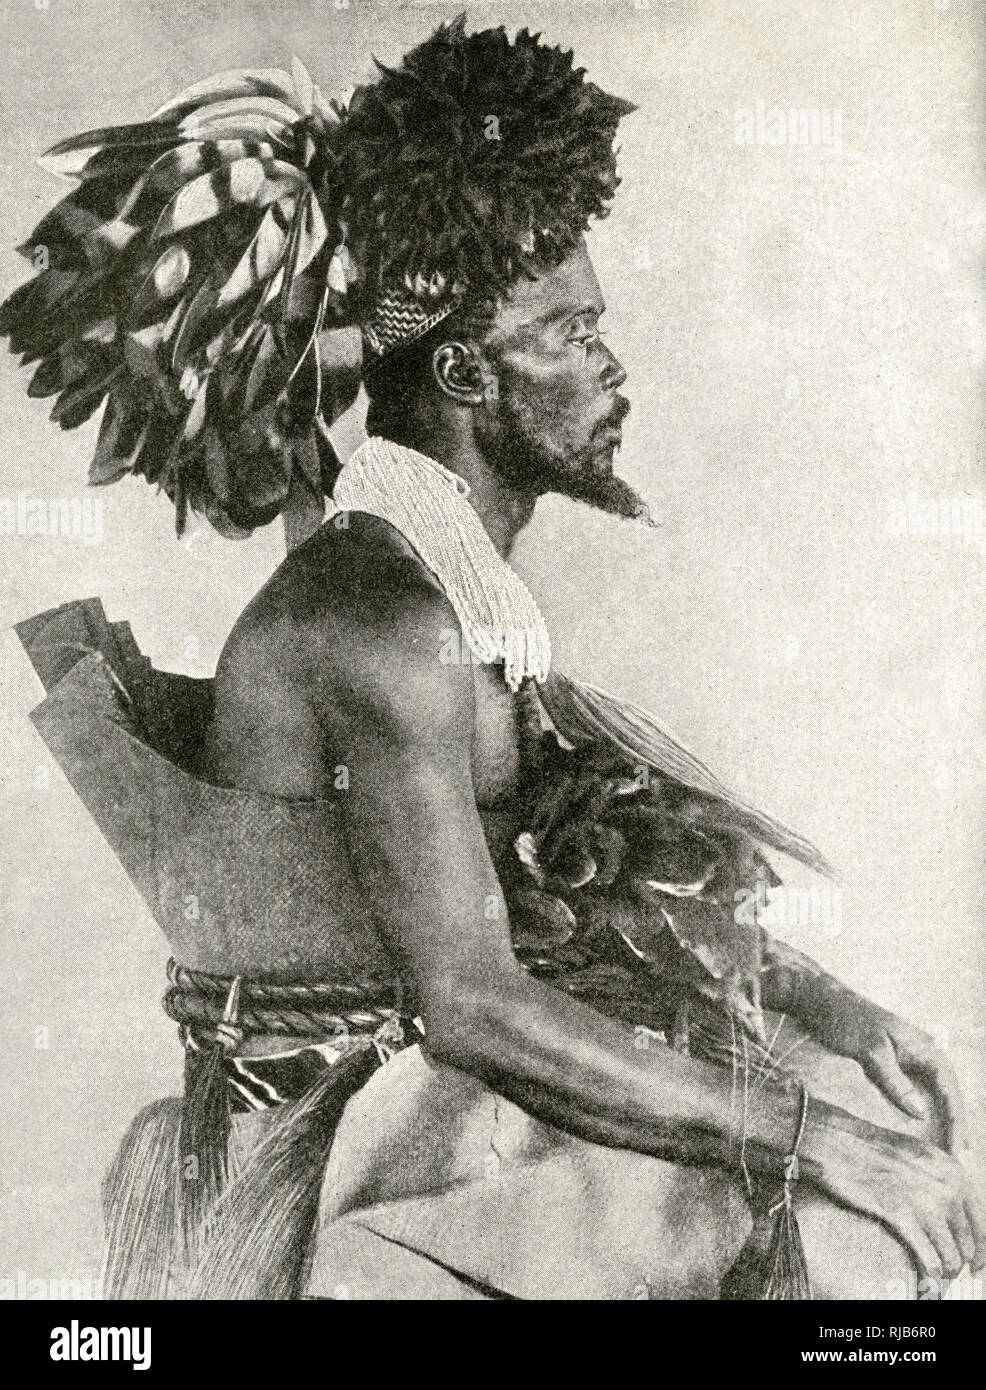 King Akondo of the Mangbettu (Mangbetu) tribe in royal dancing costume, Belgian Congo (now Democratic Republic of the Congo), Central Africa. - Stock Image